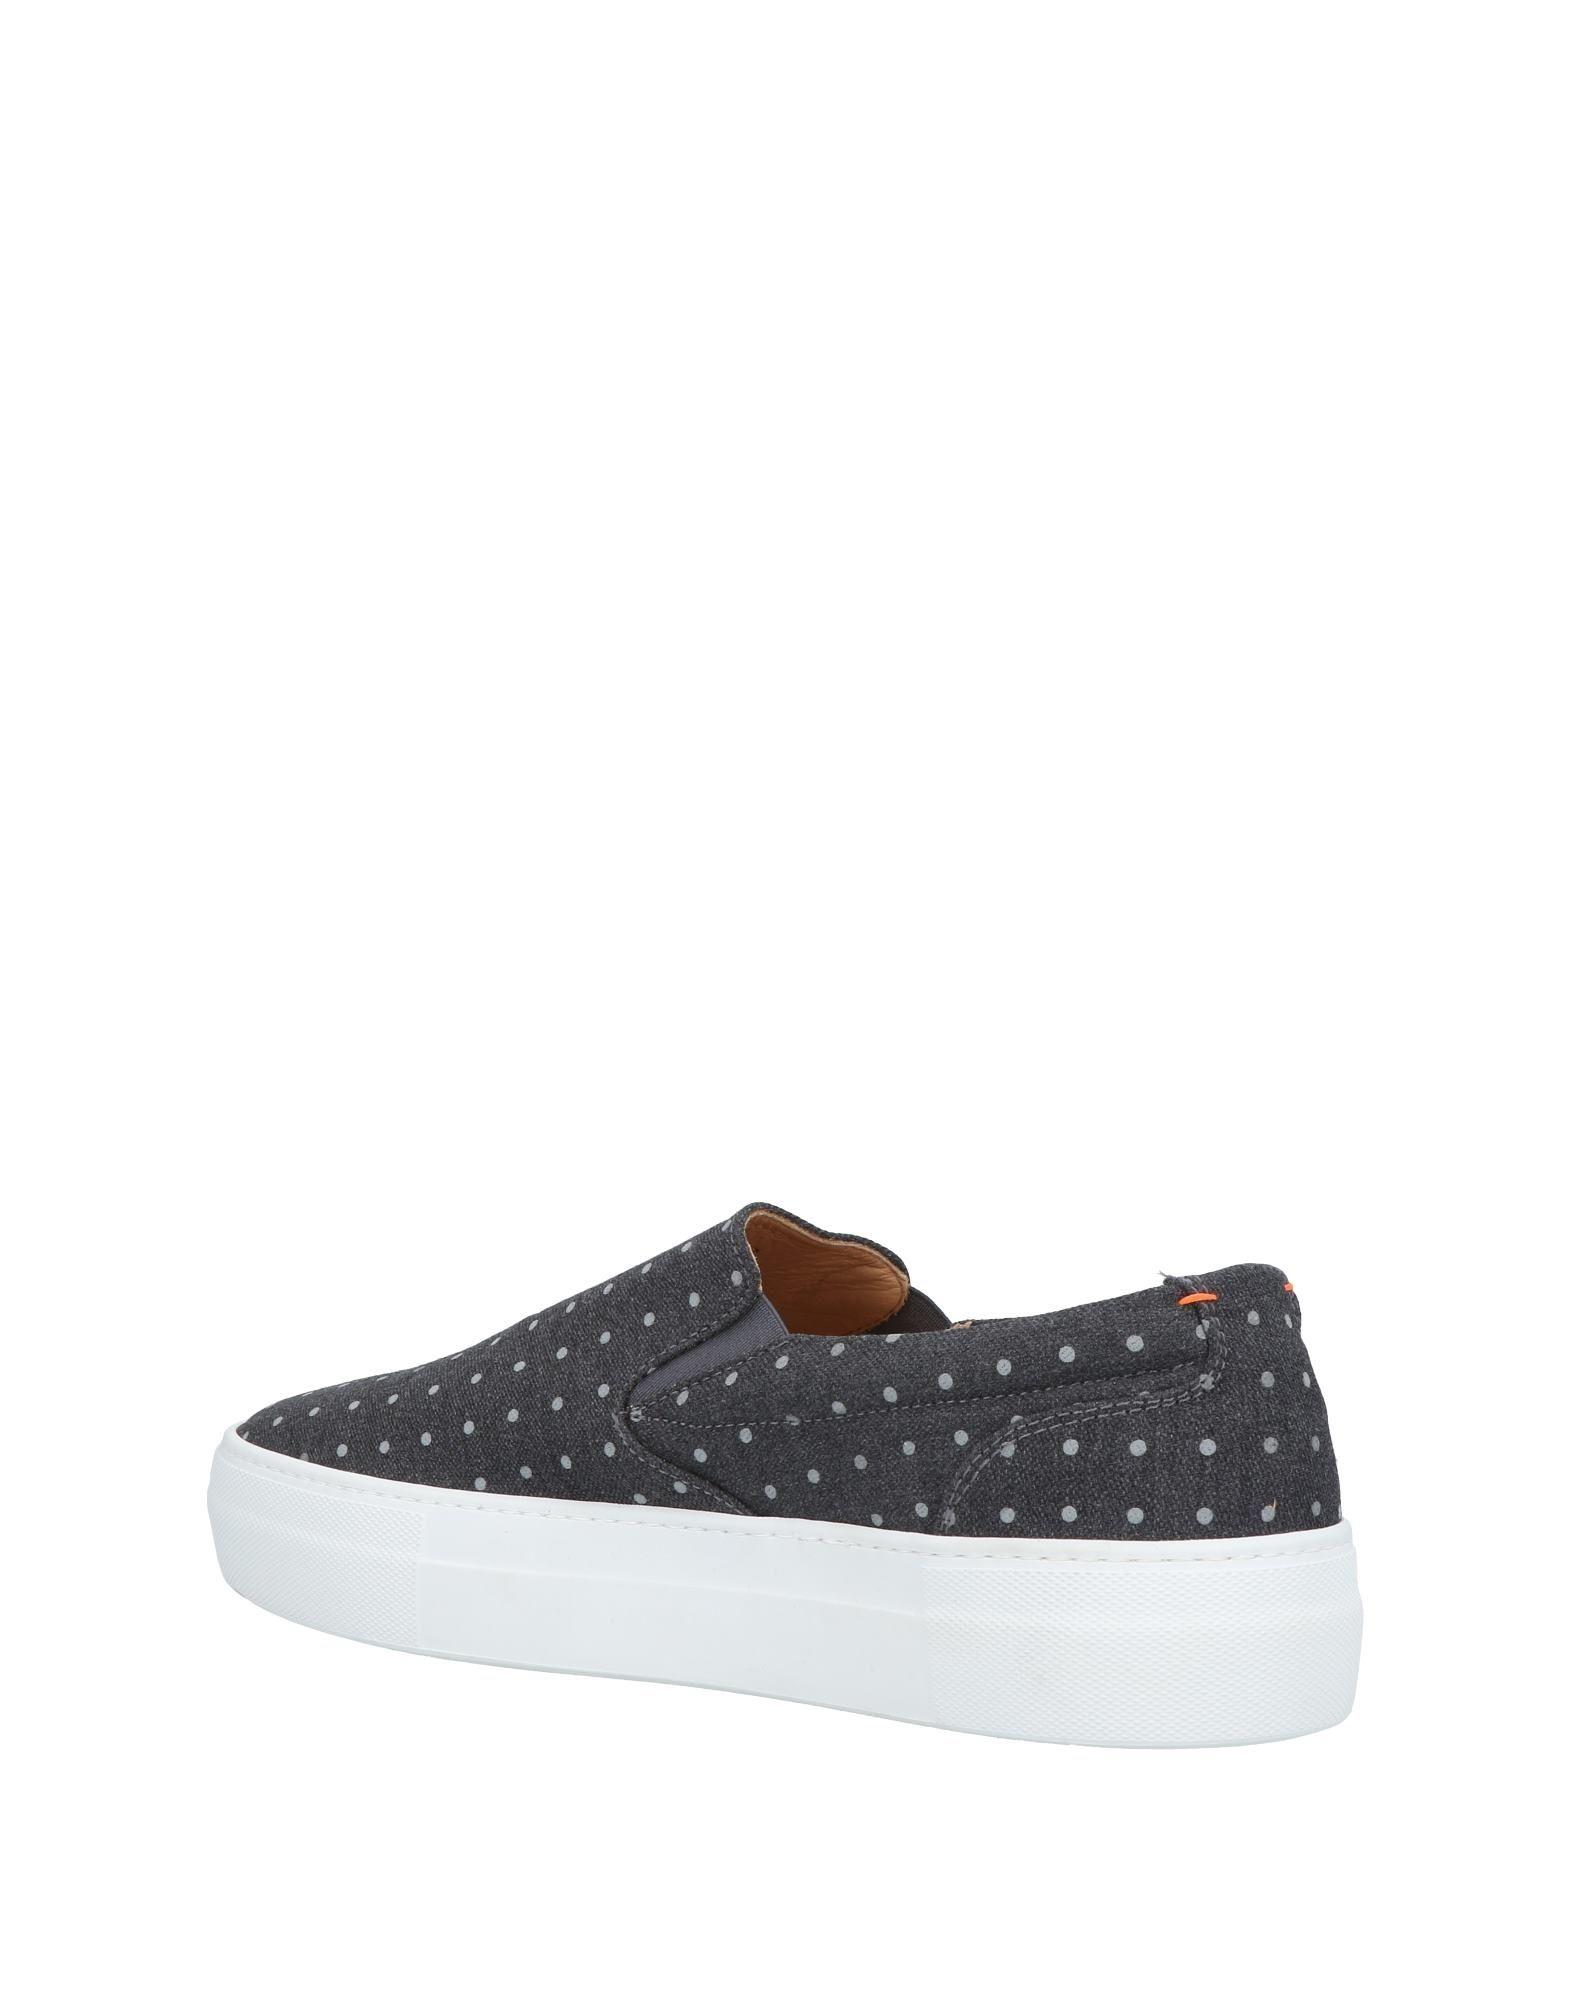 With Credit Card Sale Online FOOTWEAR - Low-tops & sneakers Lardini Official For Sale fHFIauvf